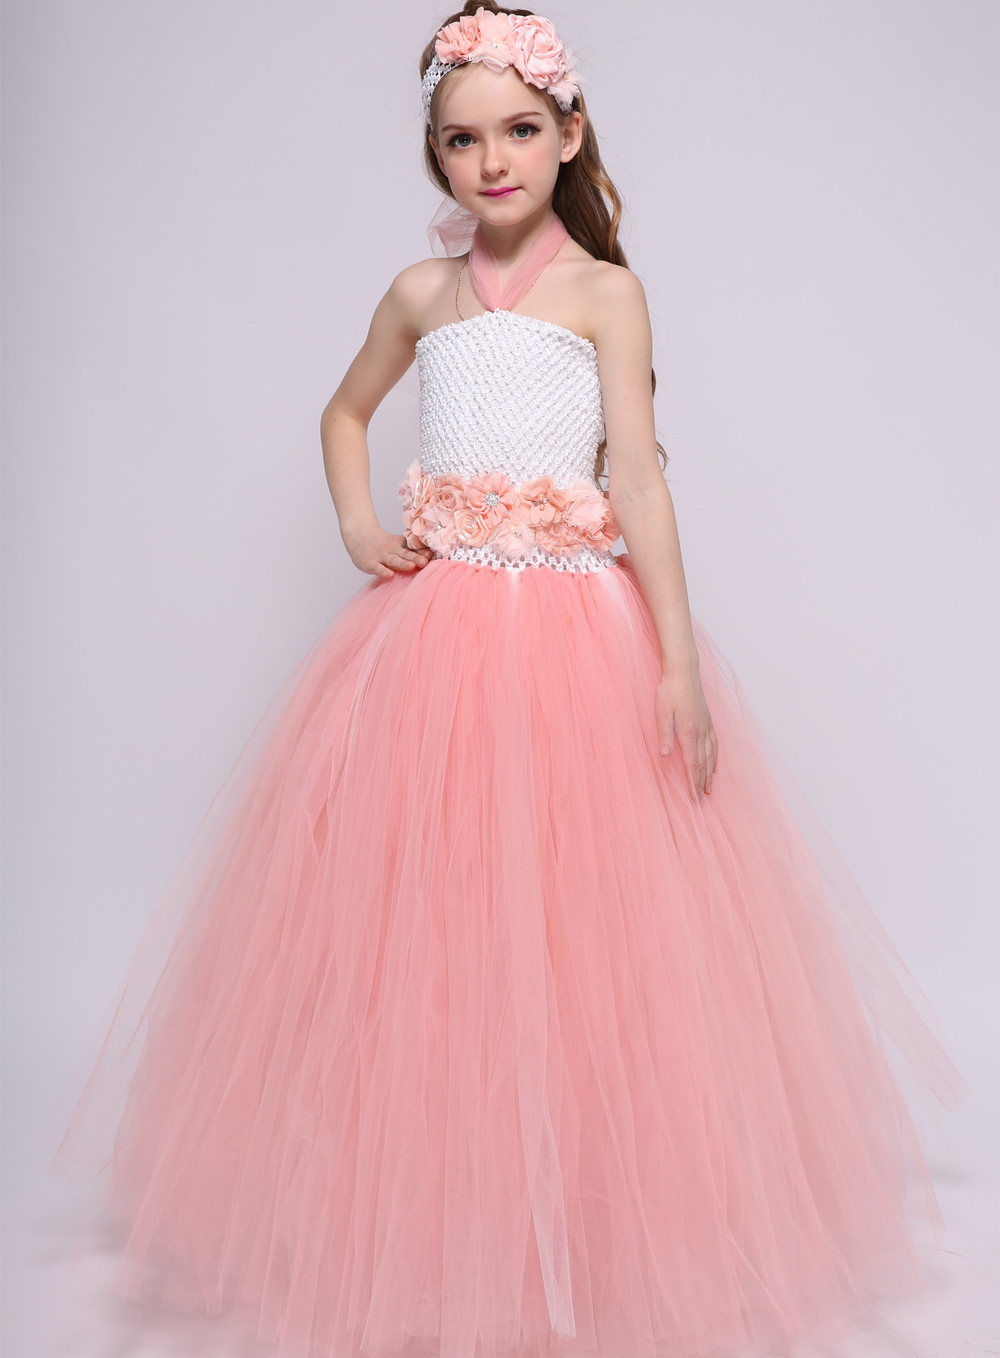 Christmas Dresses for Girs kids Tulle Lace Wedding Dress Girls Princess Tutu Dress Flower Girl Dress Carnival Party Events Wear